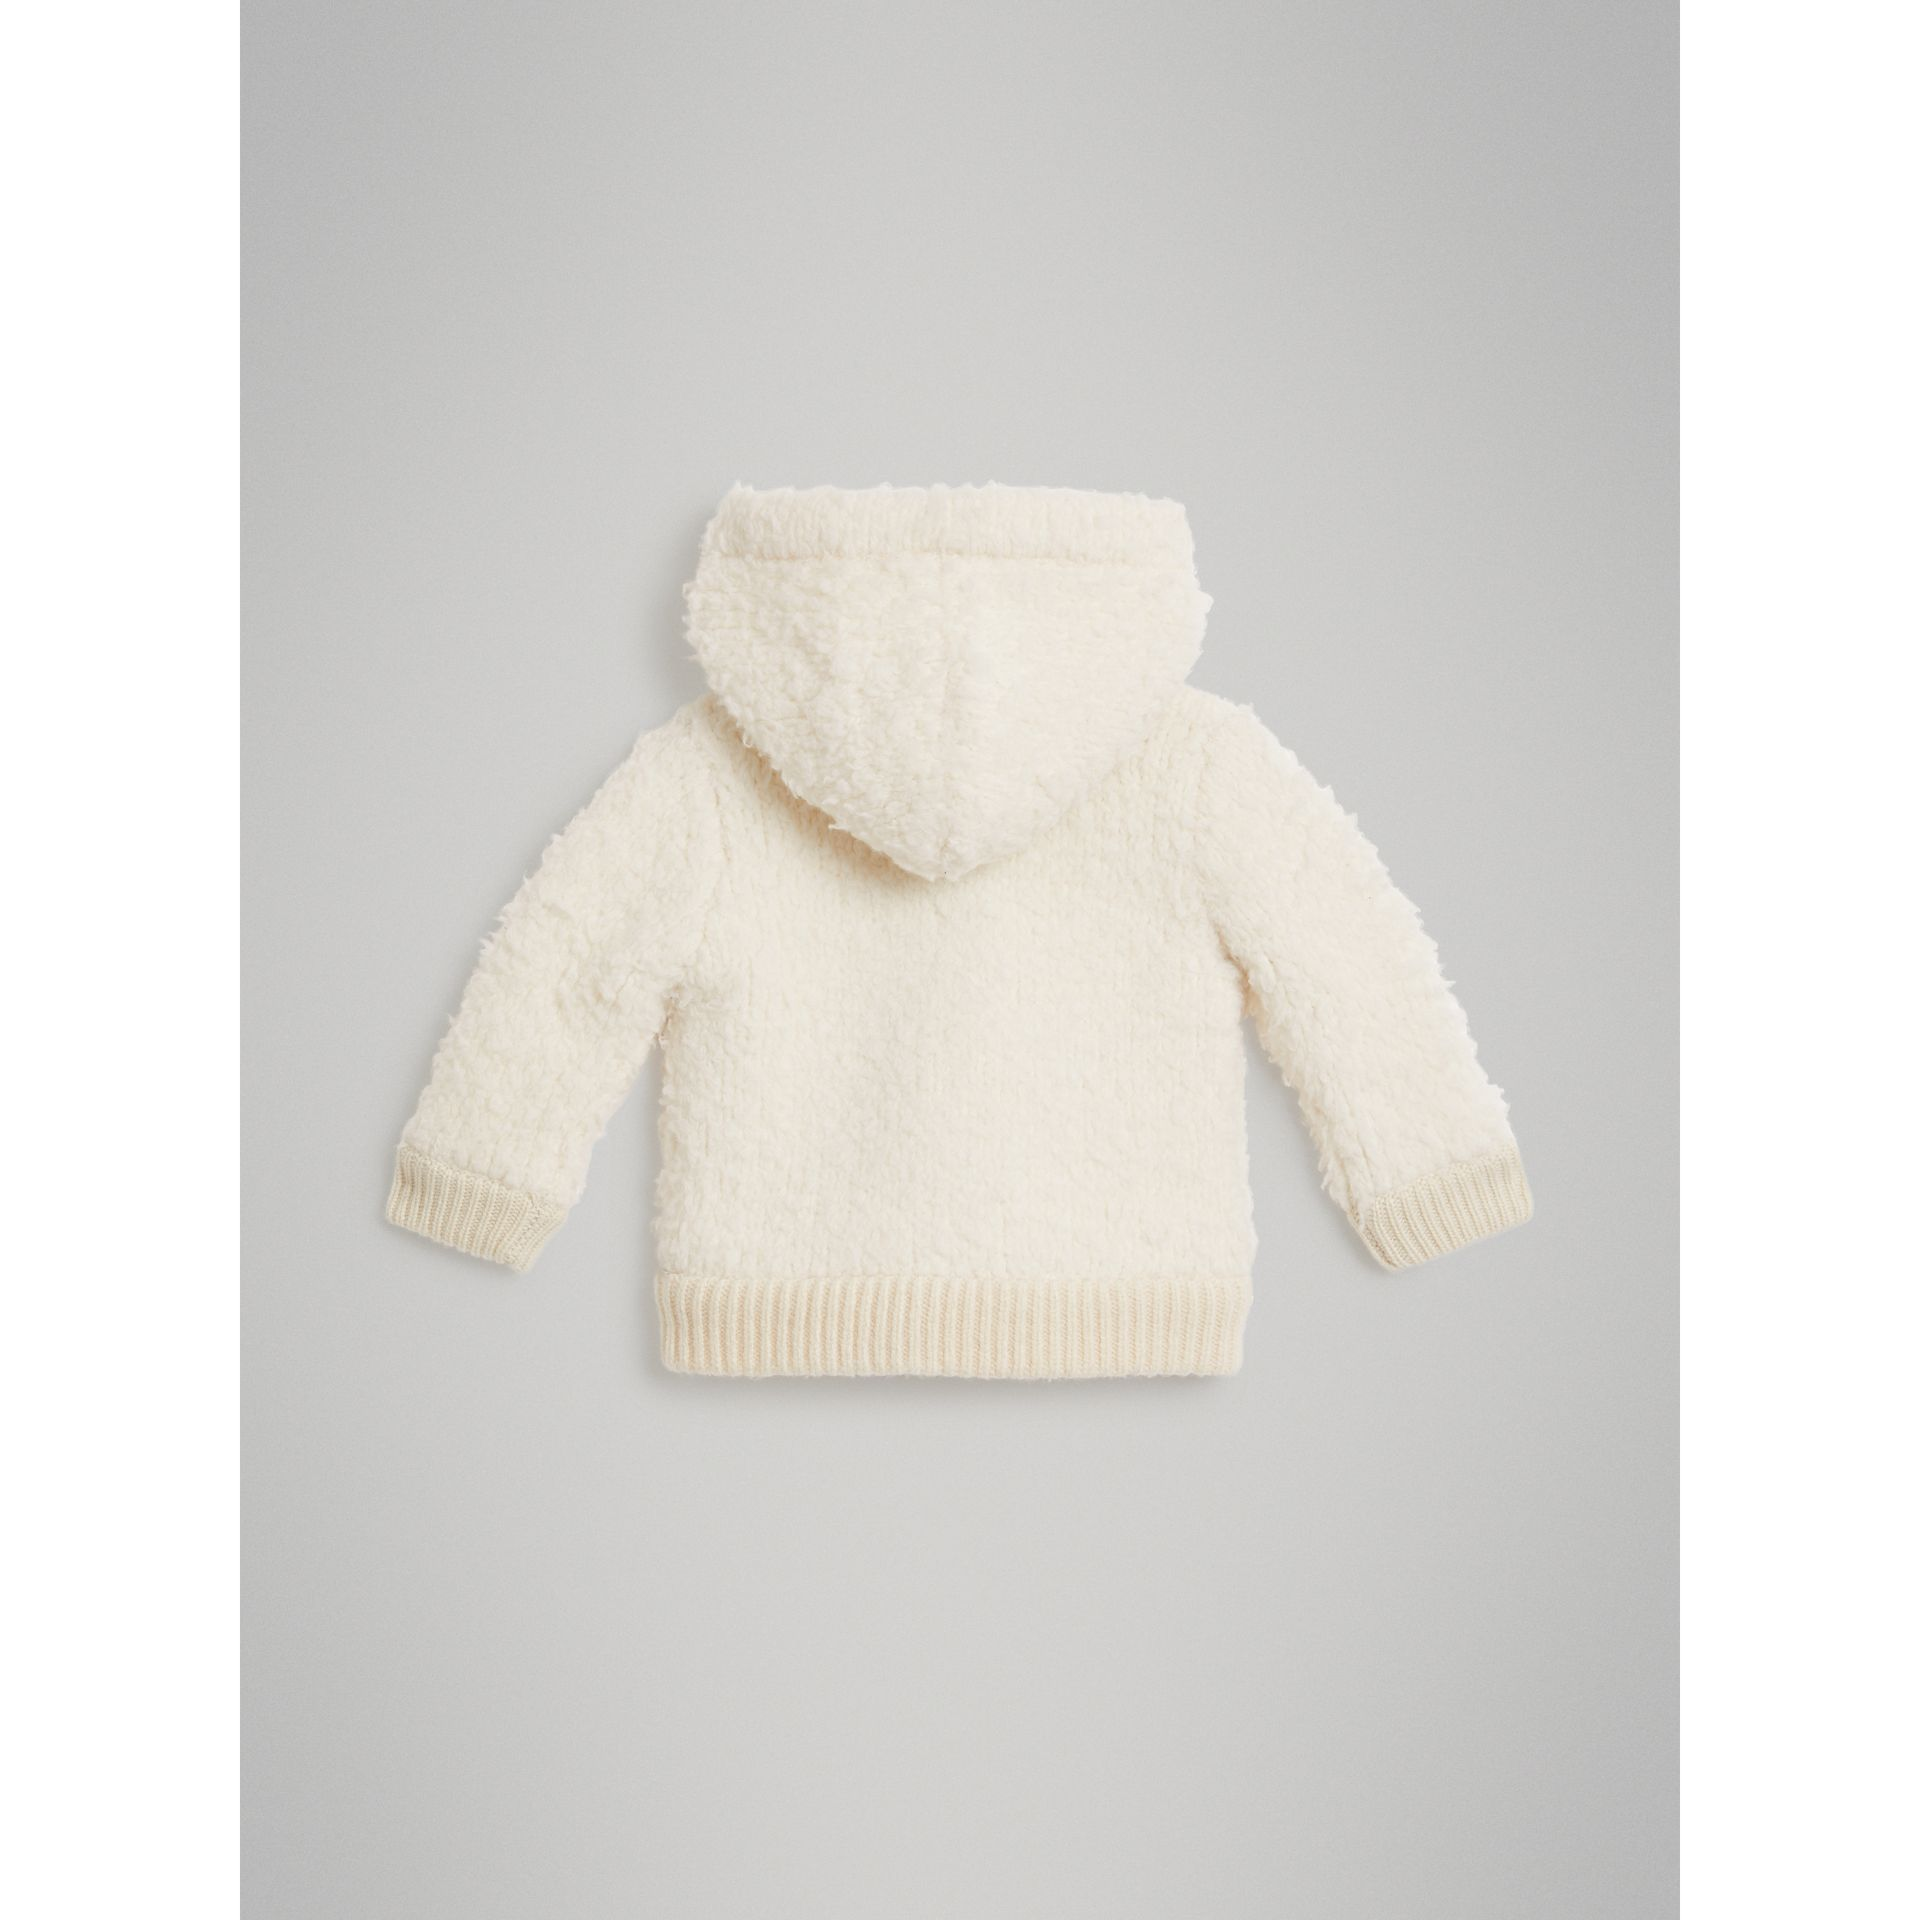 Wool Blend Hooded Top in Ivory - Children | Burberry - gallery image 3